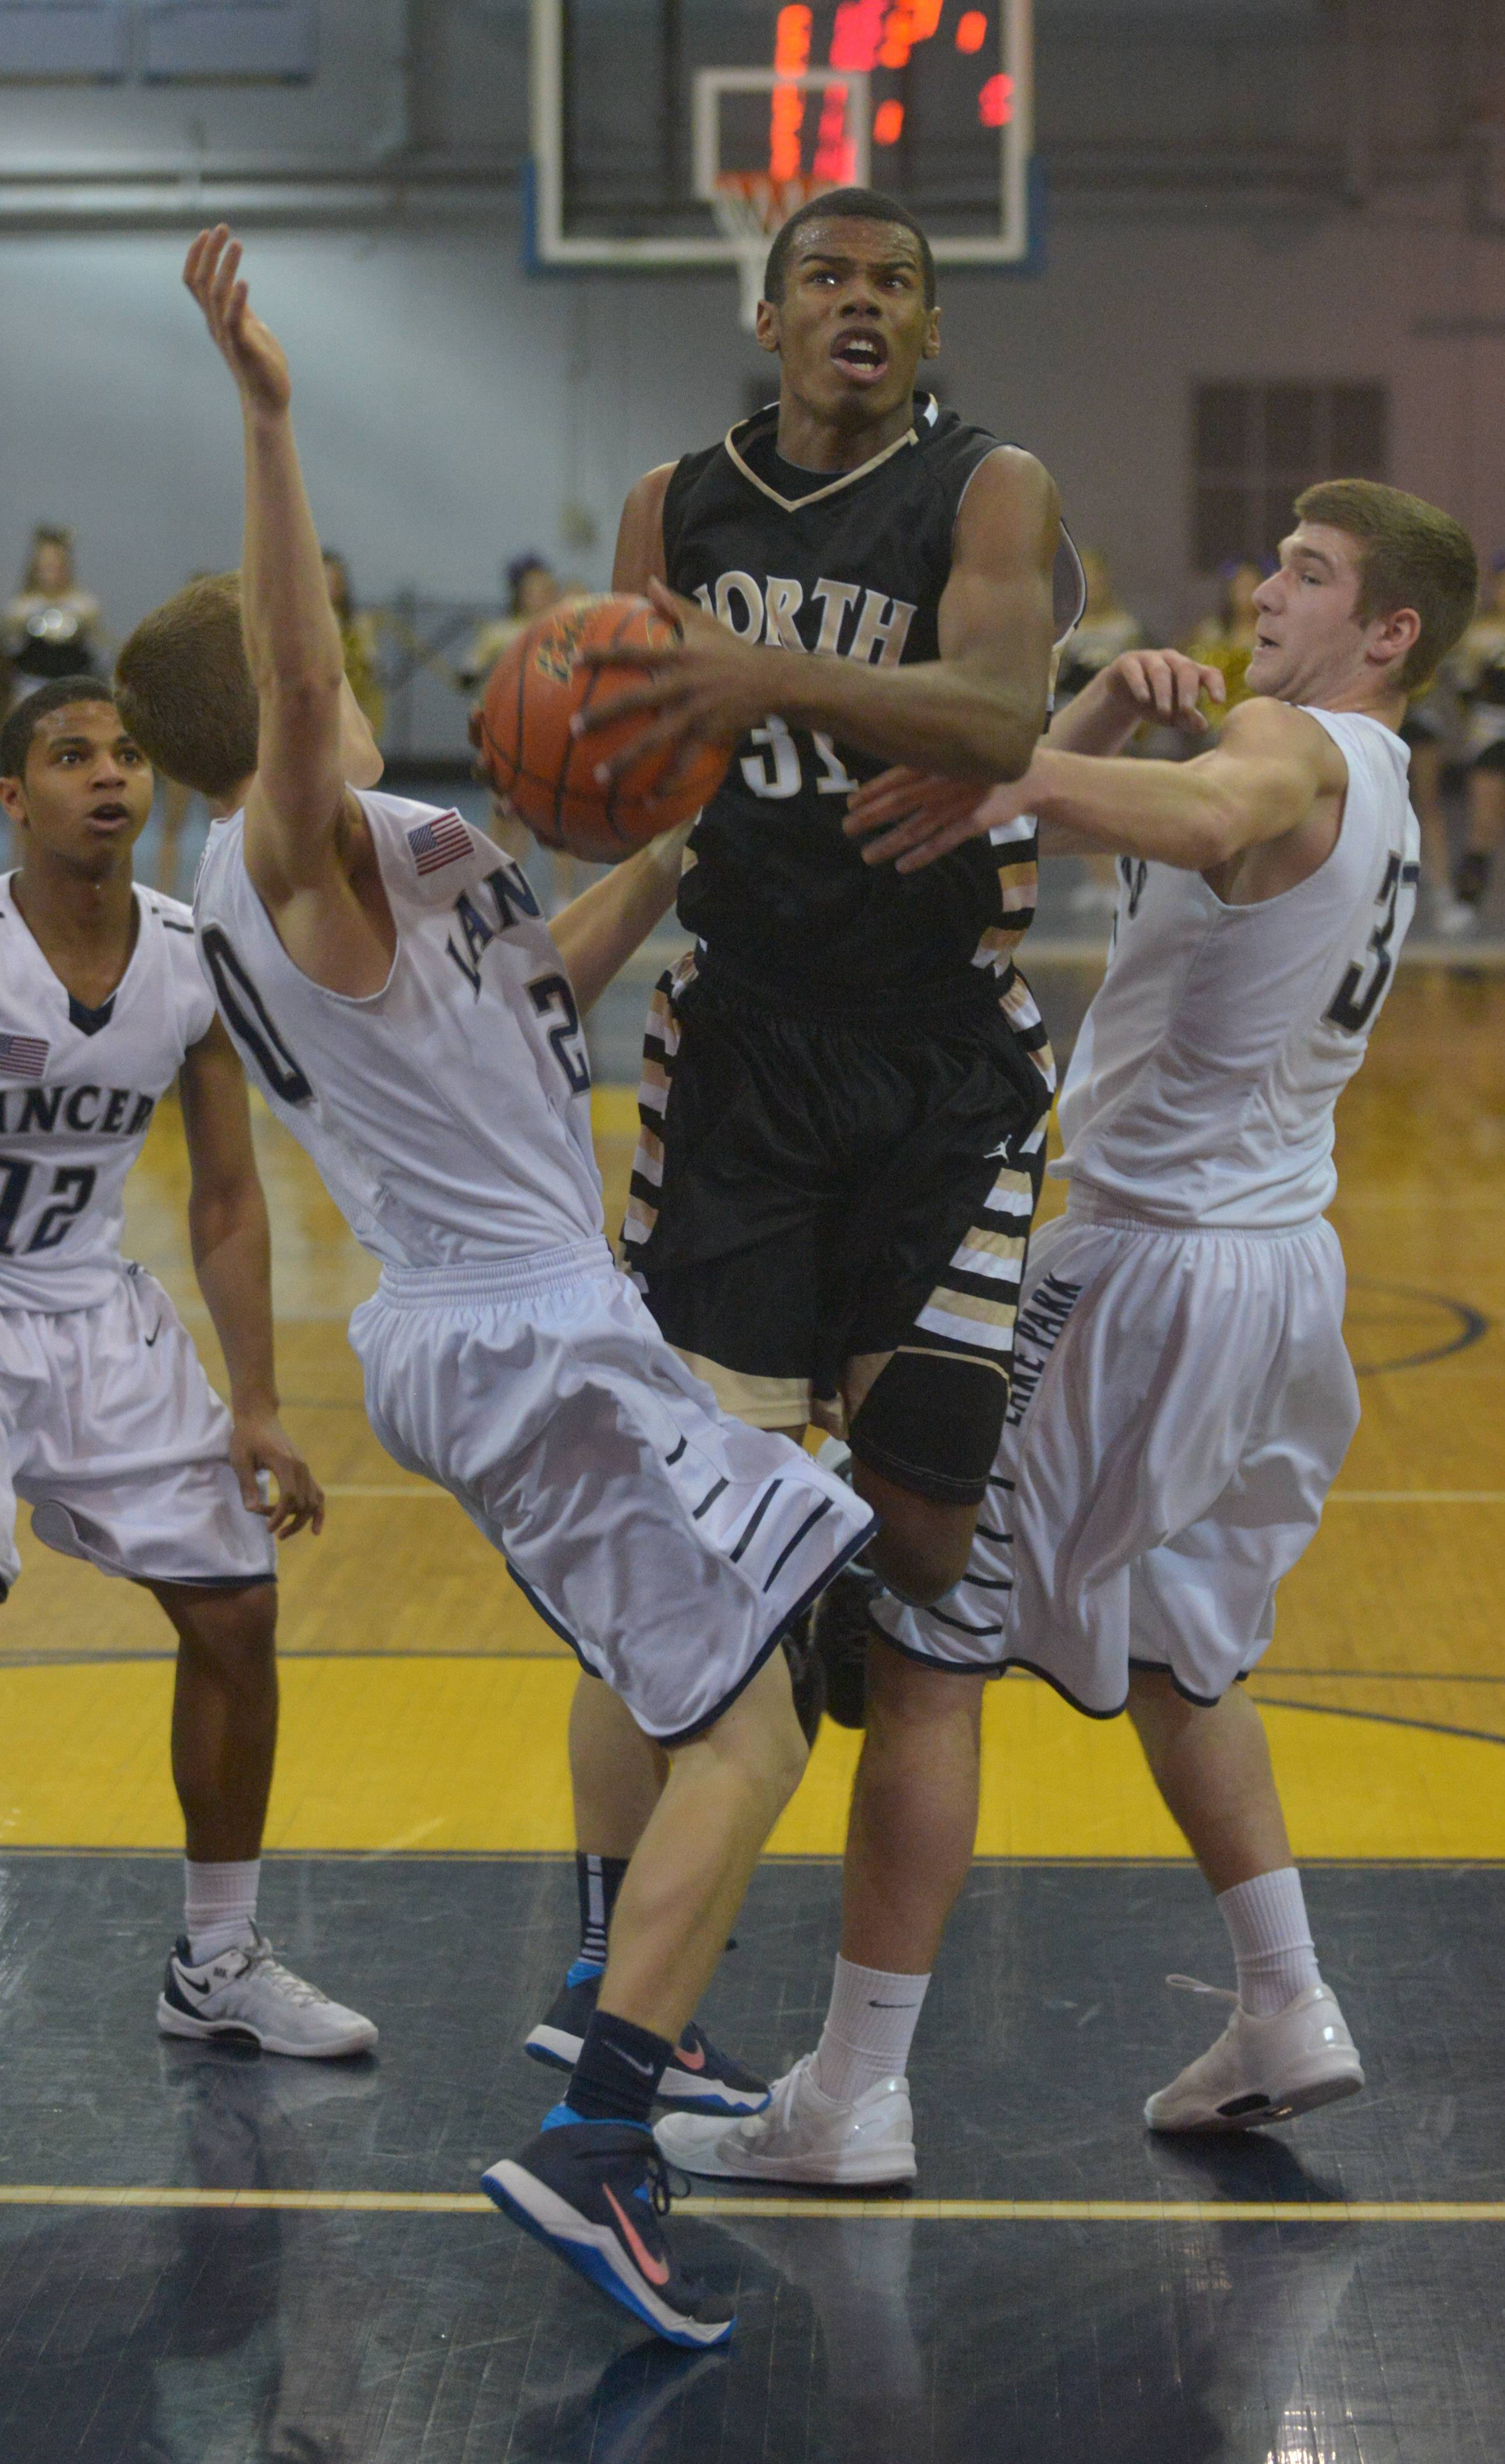 Lake Park vs. Glenbard North last Friday in Class 4A regional final action at Leyden.